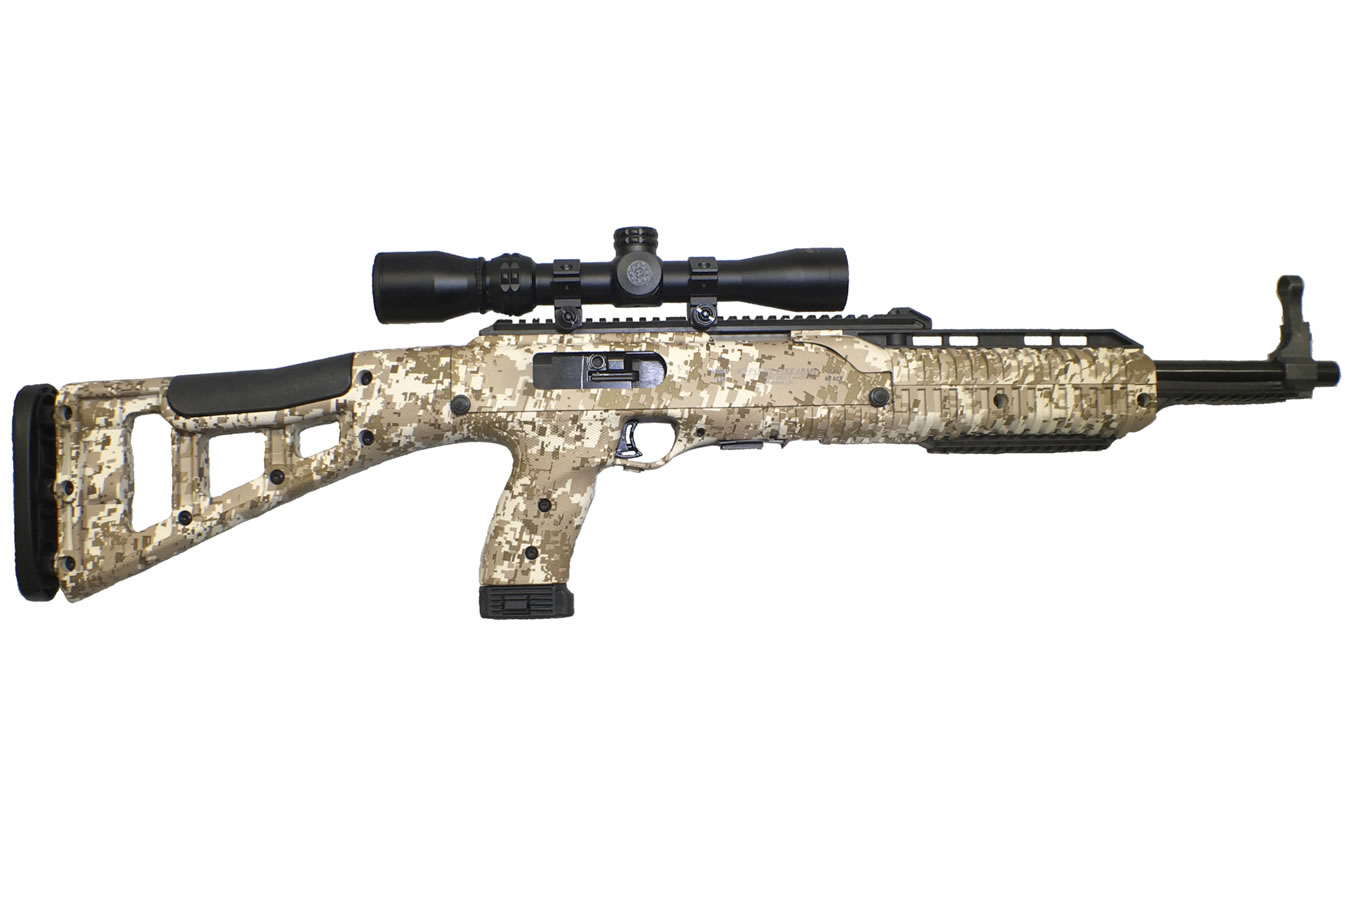 4595 HUNTER CARBINE DDP CAMO WITH SCOPE